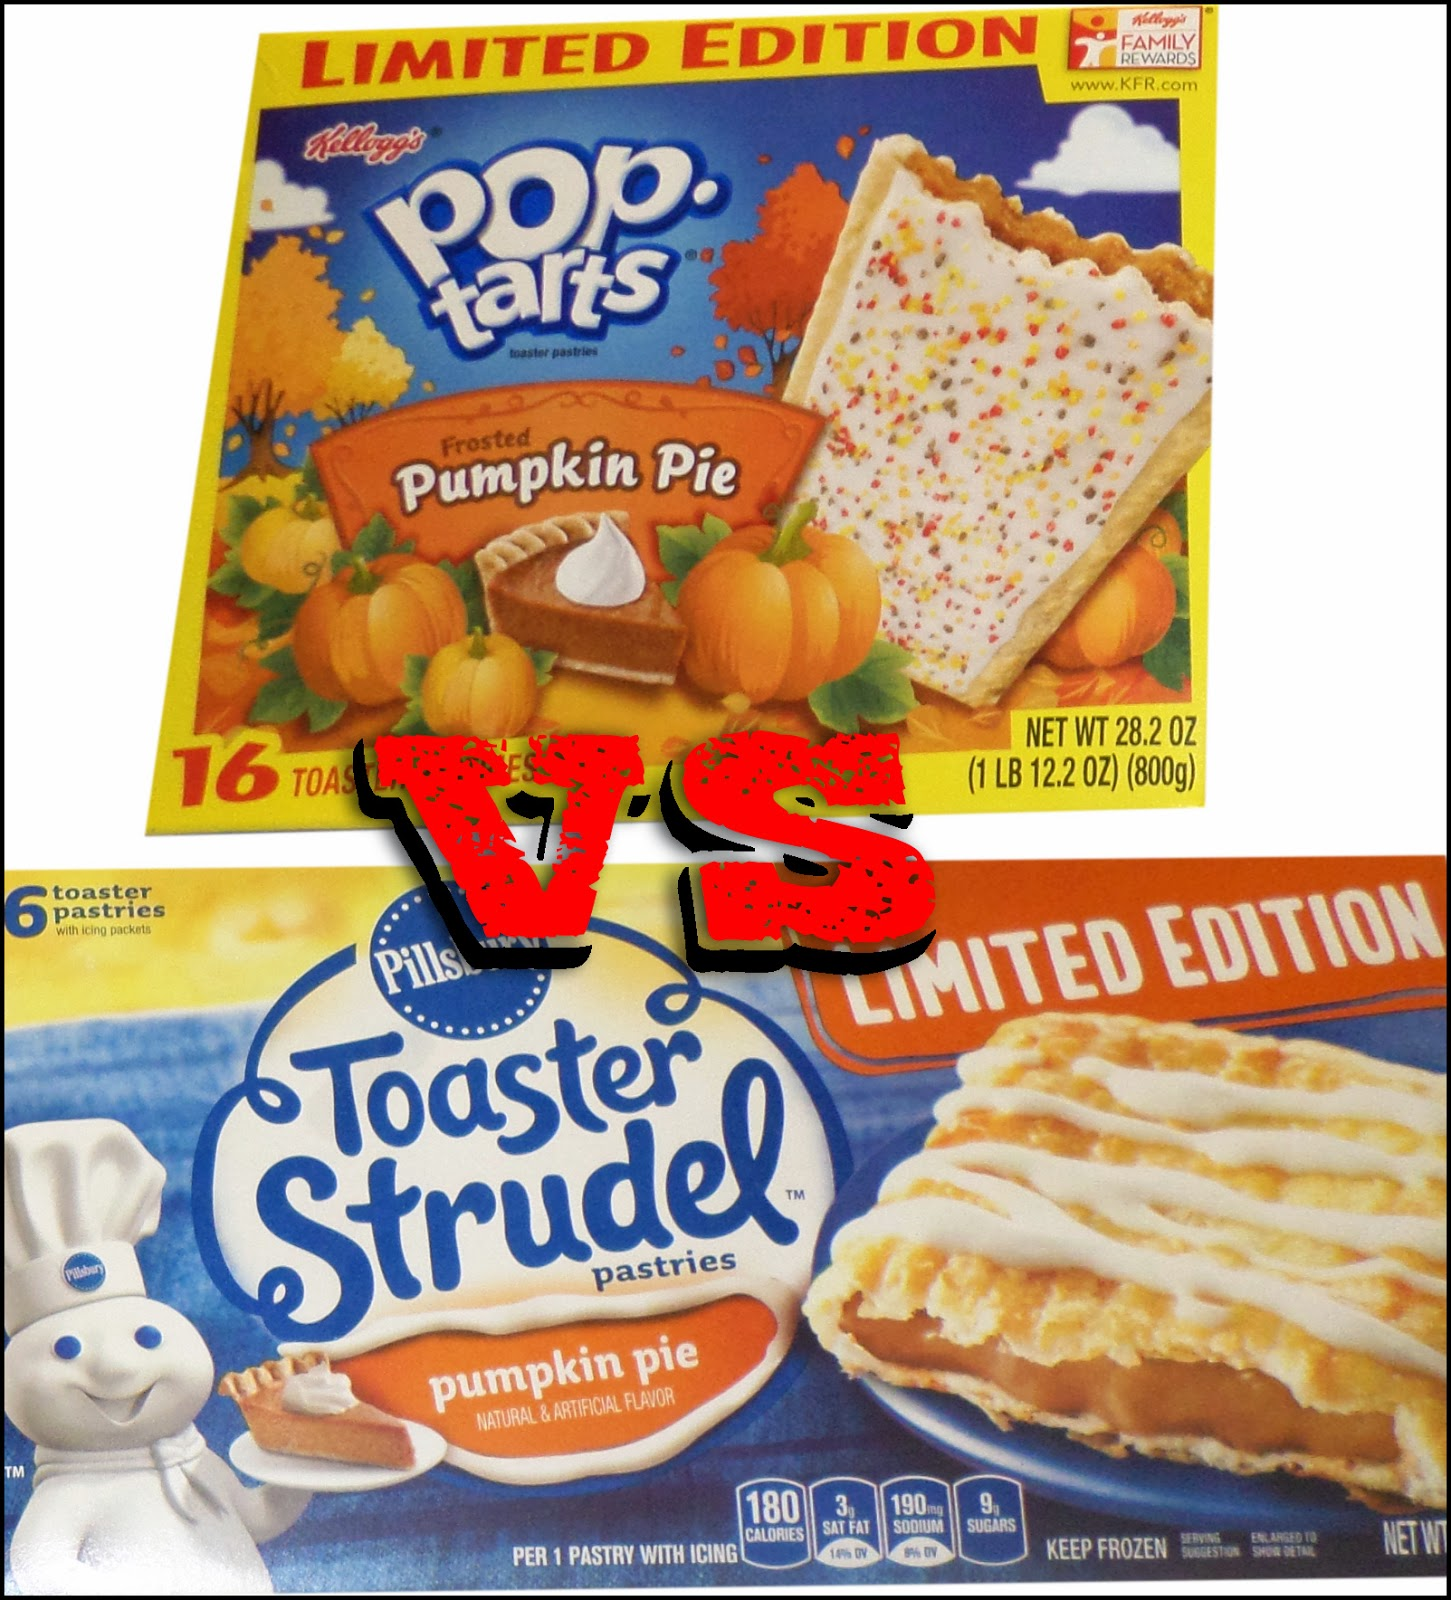 Pop-Tarts is a brand of toaster pastries that the Kellogg Company introduced in Pop-Tarts have a sugary filling sealed inside two layers of thin, rectangular pastry crust. Pop-Tarts have a sugary filling sealed inside two layers of thin, rectangular pastry crust.